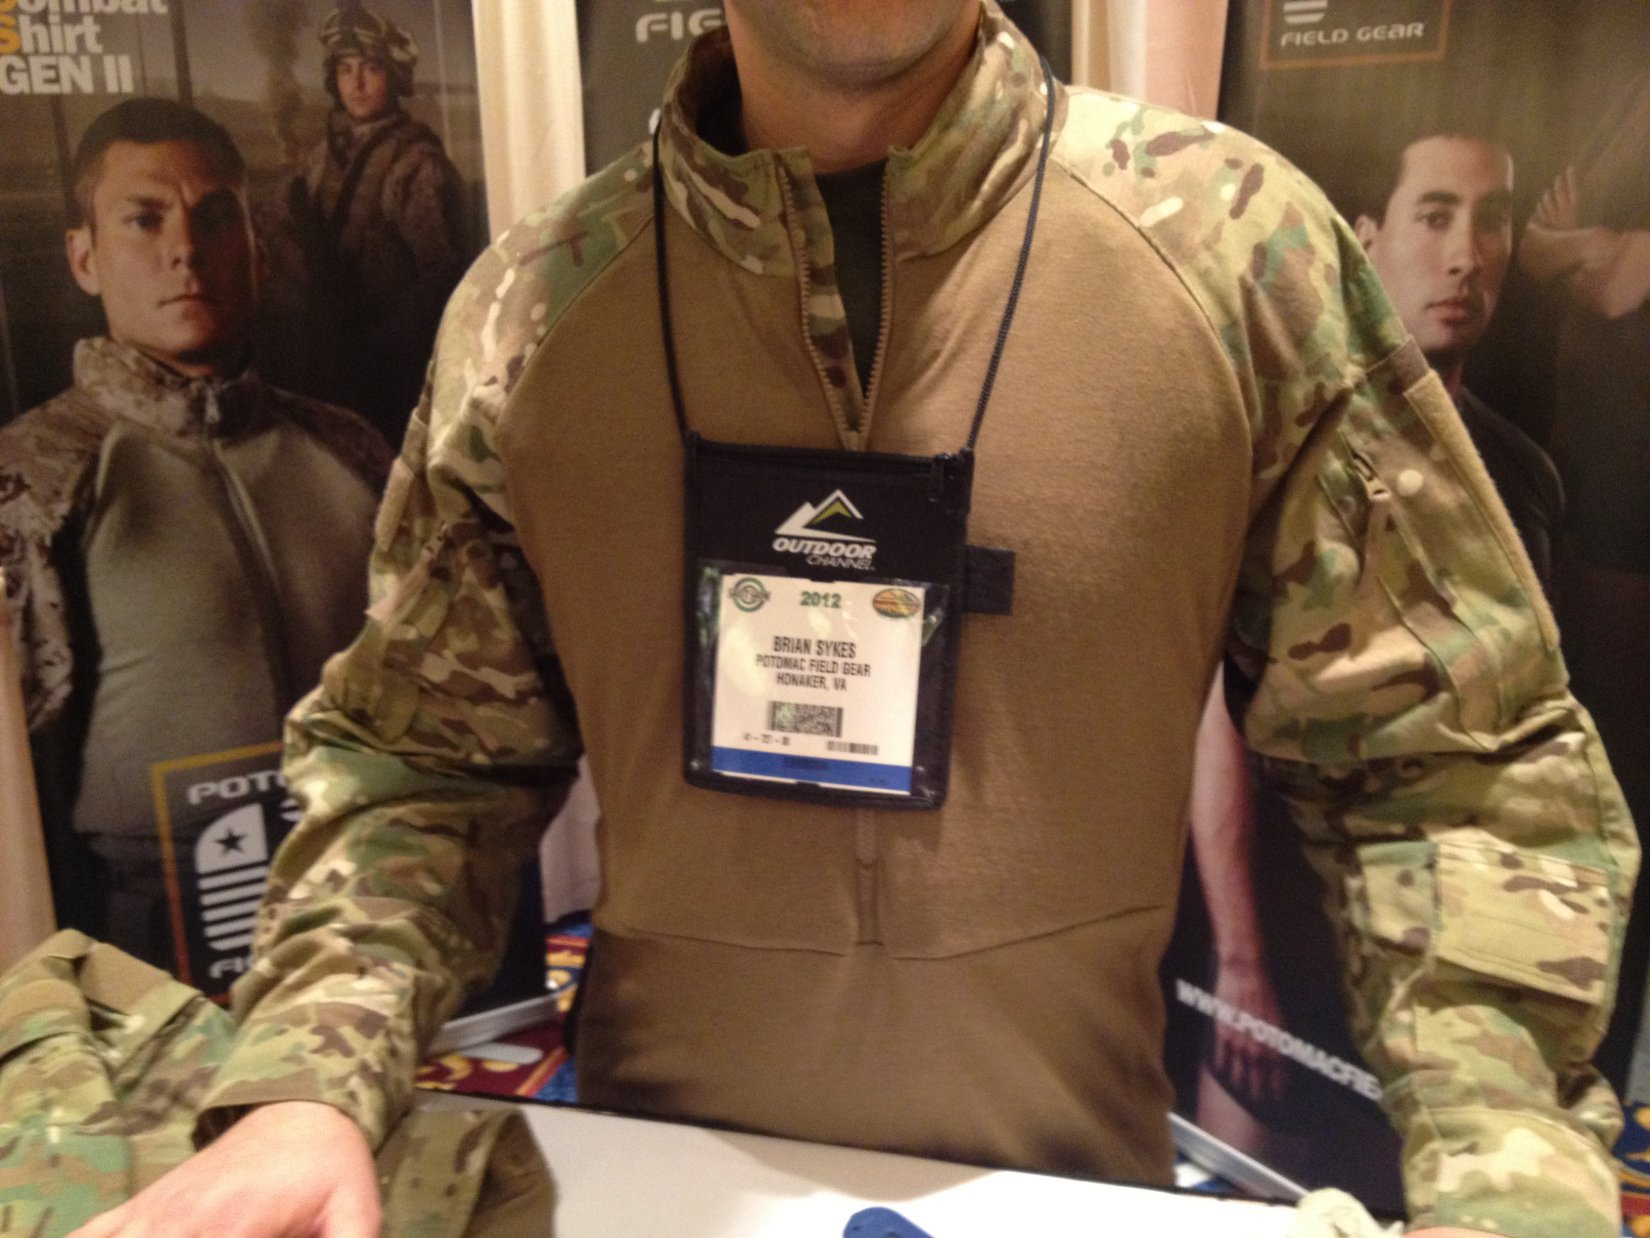 Potomac Field Gear PFG Advanced Combat Shirt Gen II FR Battle Shirt SHOT Show 2012 DefenseReview.com DR 6 Potomac Field Gear (PFG) Advanced Combat Shirt (ADCS) Gen. II (MultiCam Camouflage): Flame Retardant/Fire Resistant (FR), Moisture Wicking Battle Shirt/BDU with Passive Cooling Protective Padding and X Static Silver Fiber Laced Advanced Protective Fabric (APF) at SHOT Show 2012 (Video!)